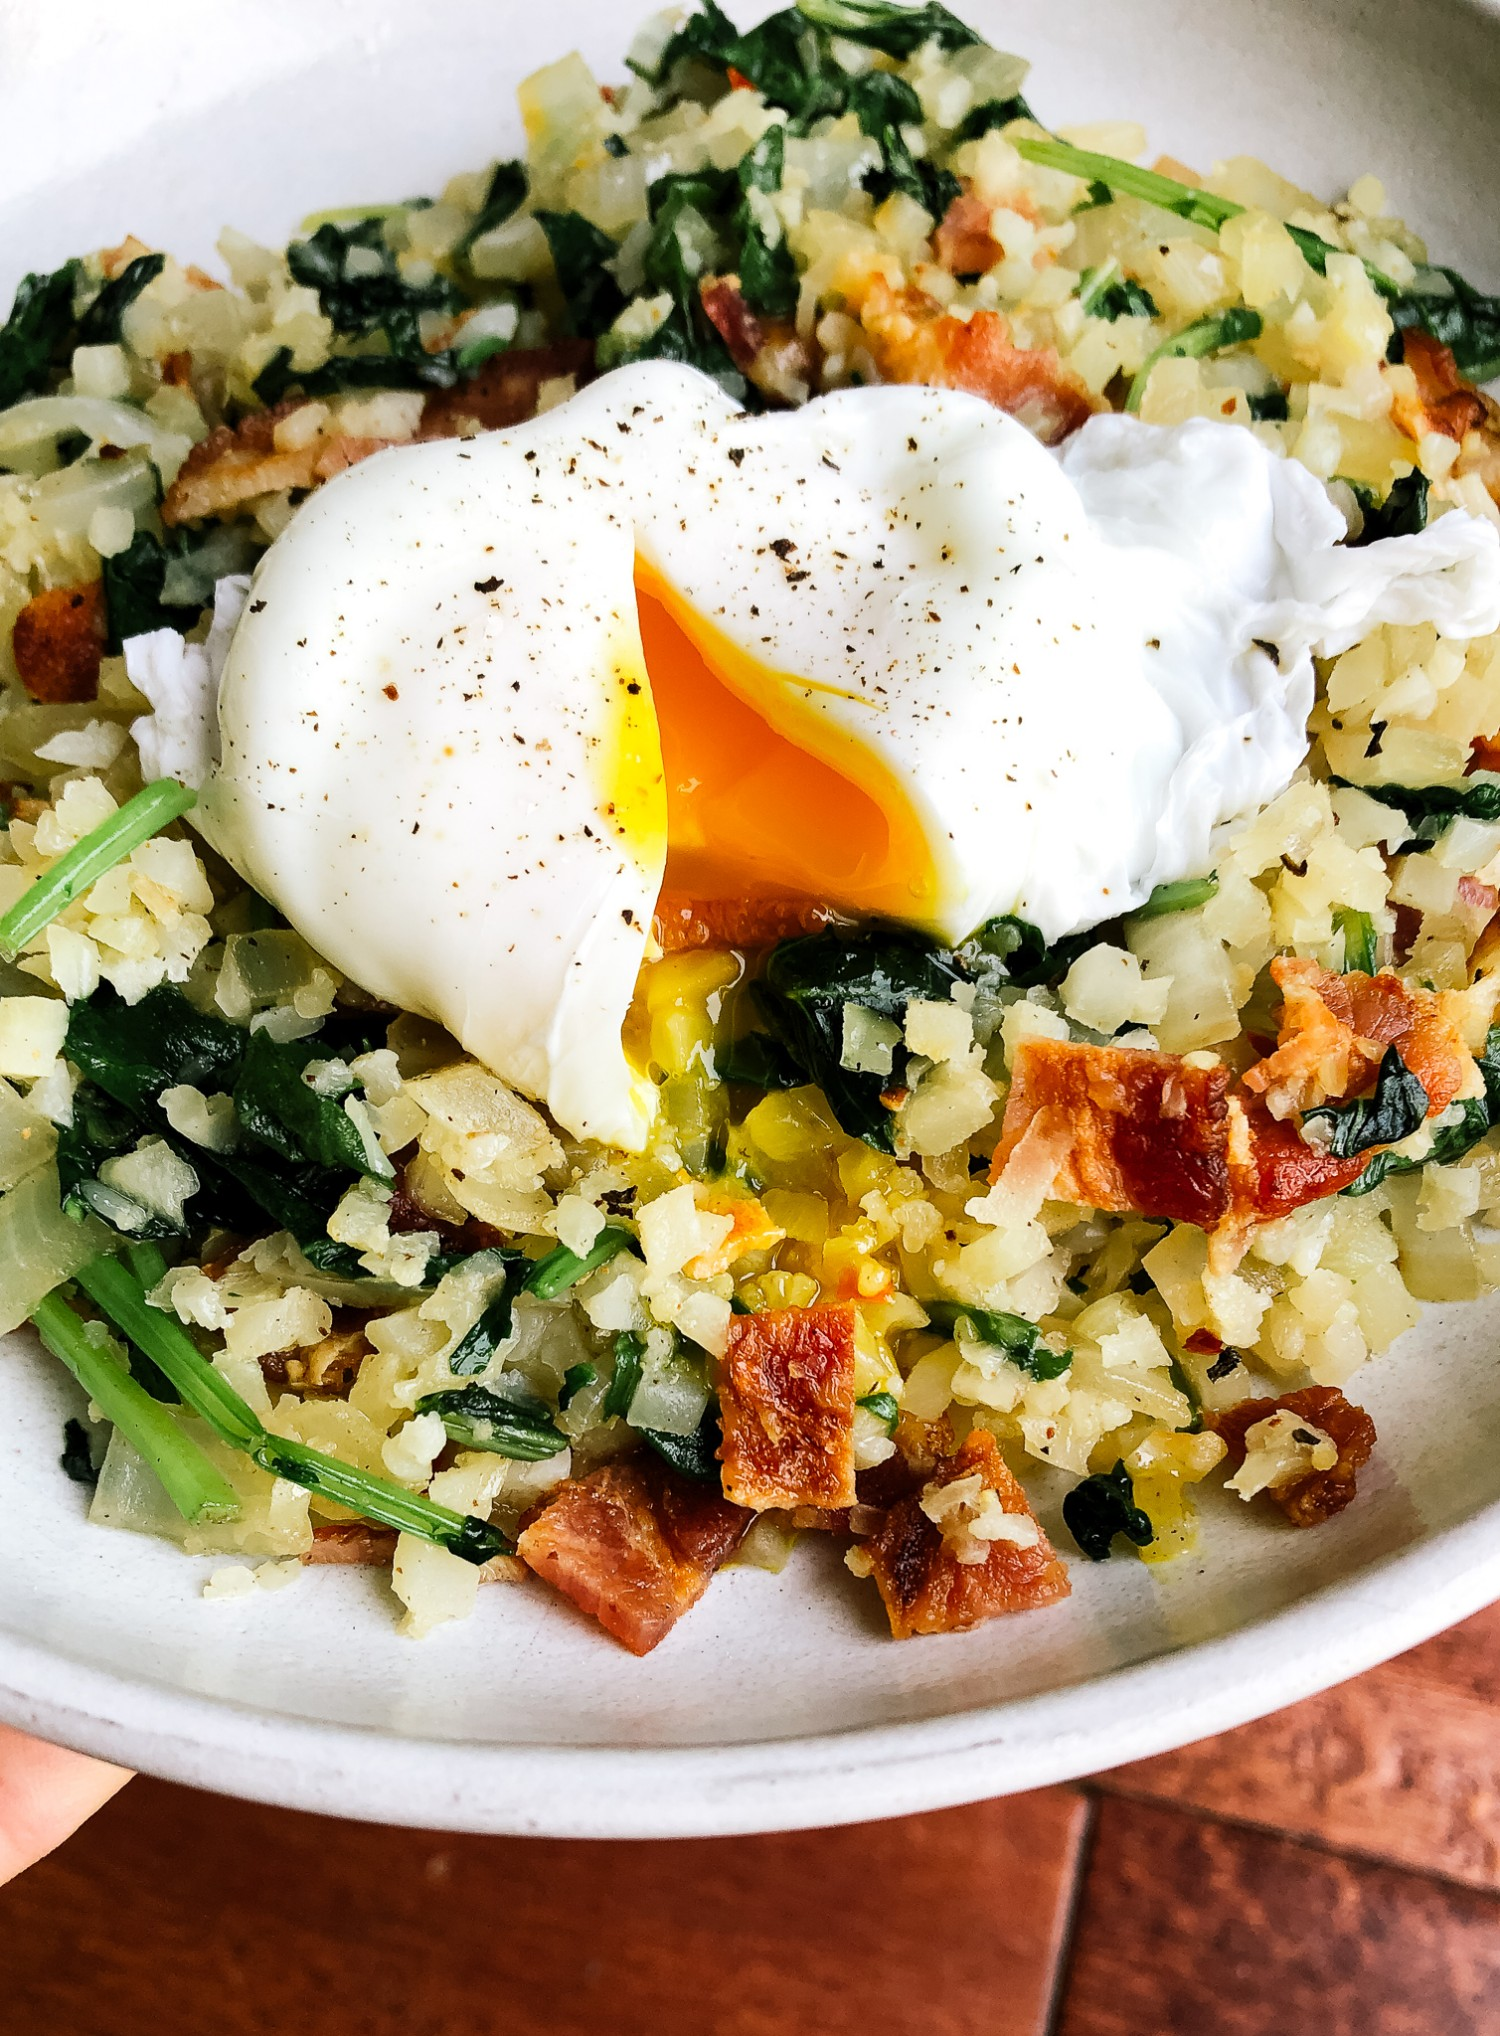 Side view of cauliflower rice stir fry with a poached egg on top